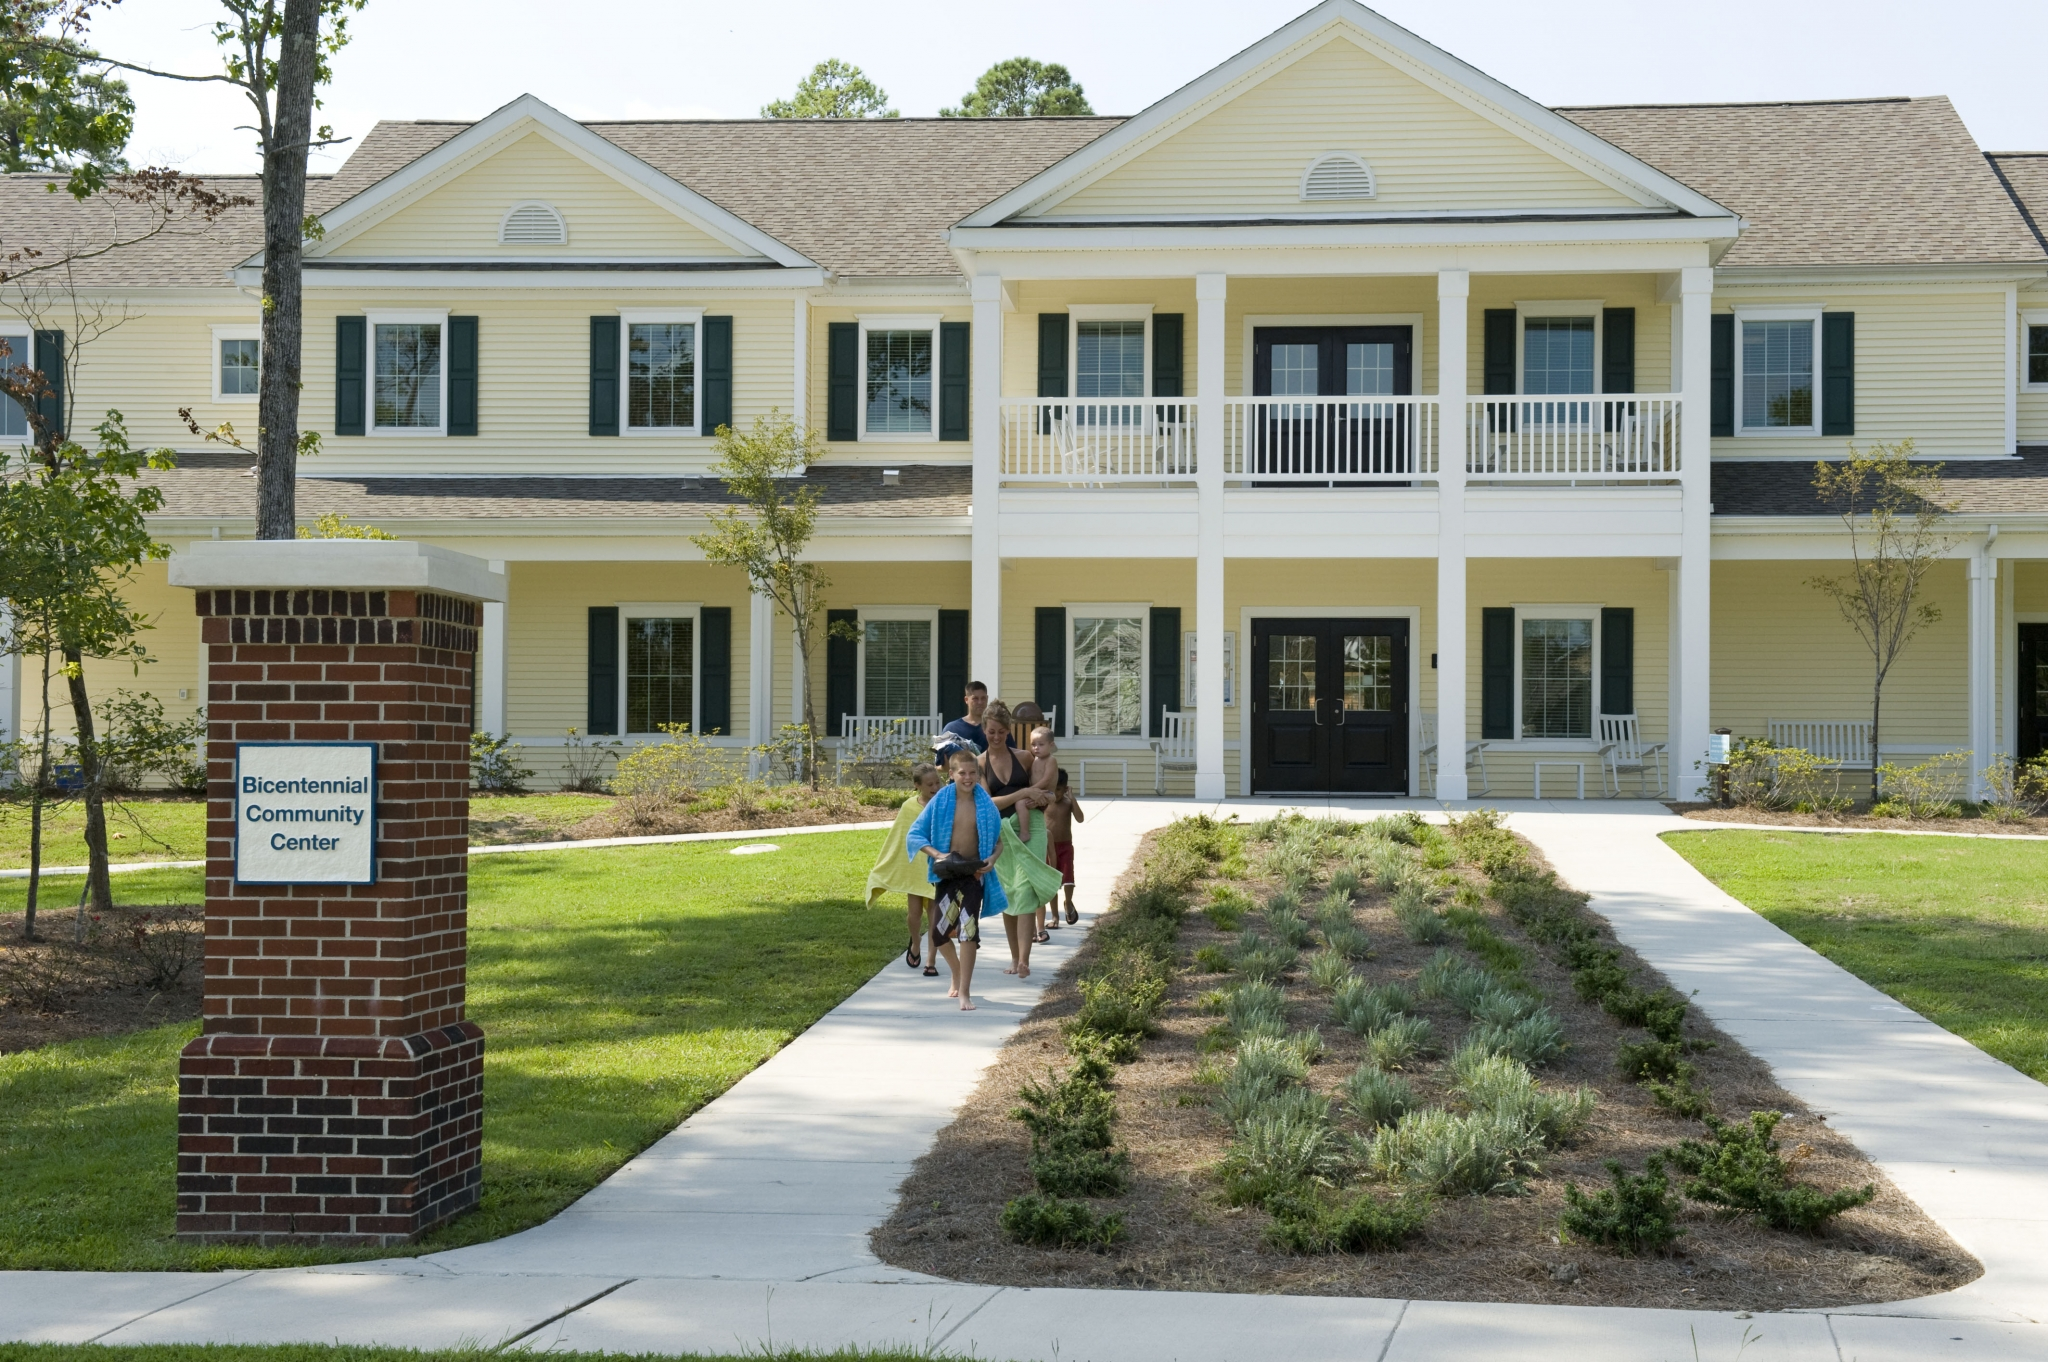 Community Center | Welcome Center | Large Club House